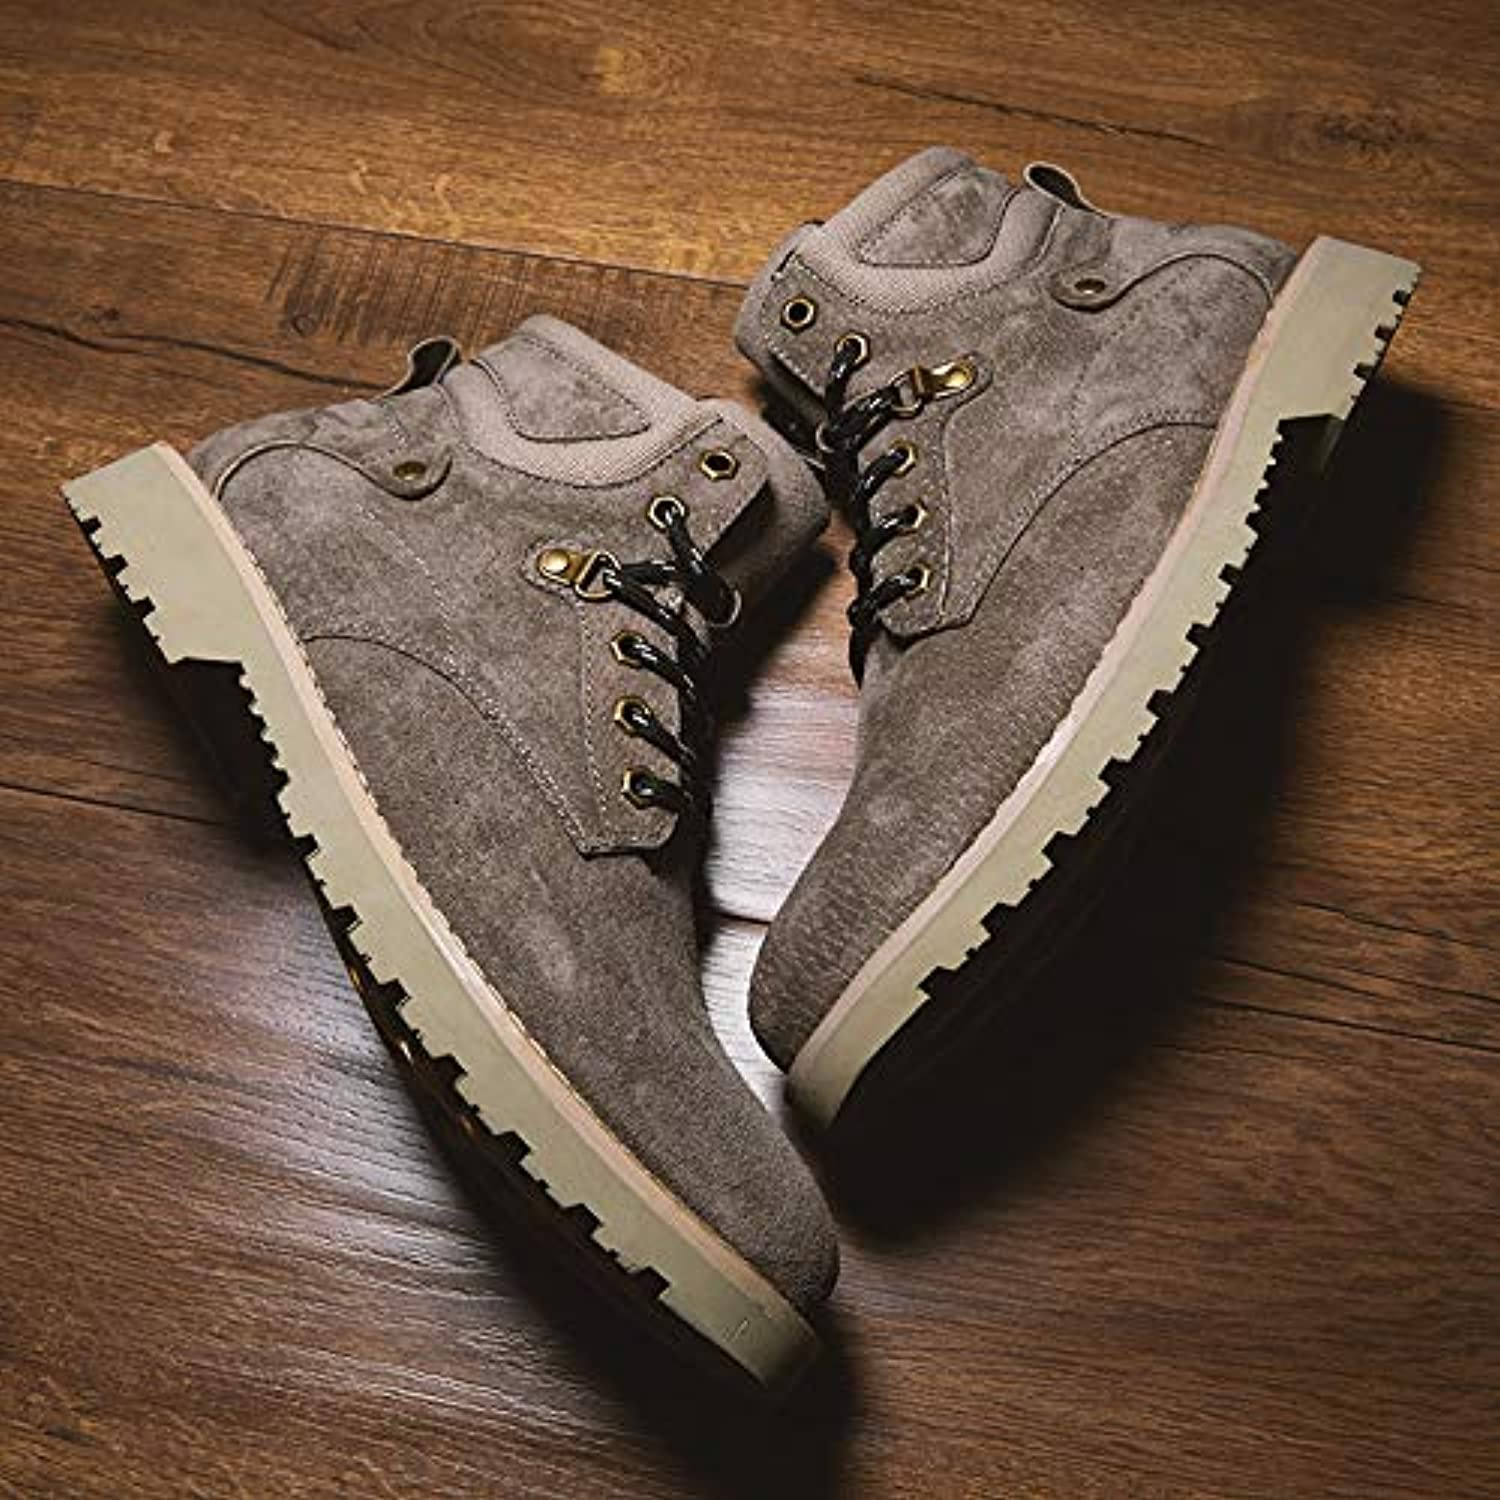 LOVDRAM Men'S shoes Martin Boots Men'S Leather Desert Tooling Men'S shoes Fashion Men'S Boots New Military Boots High Help Autumn